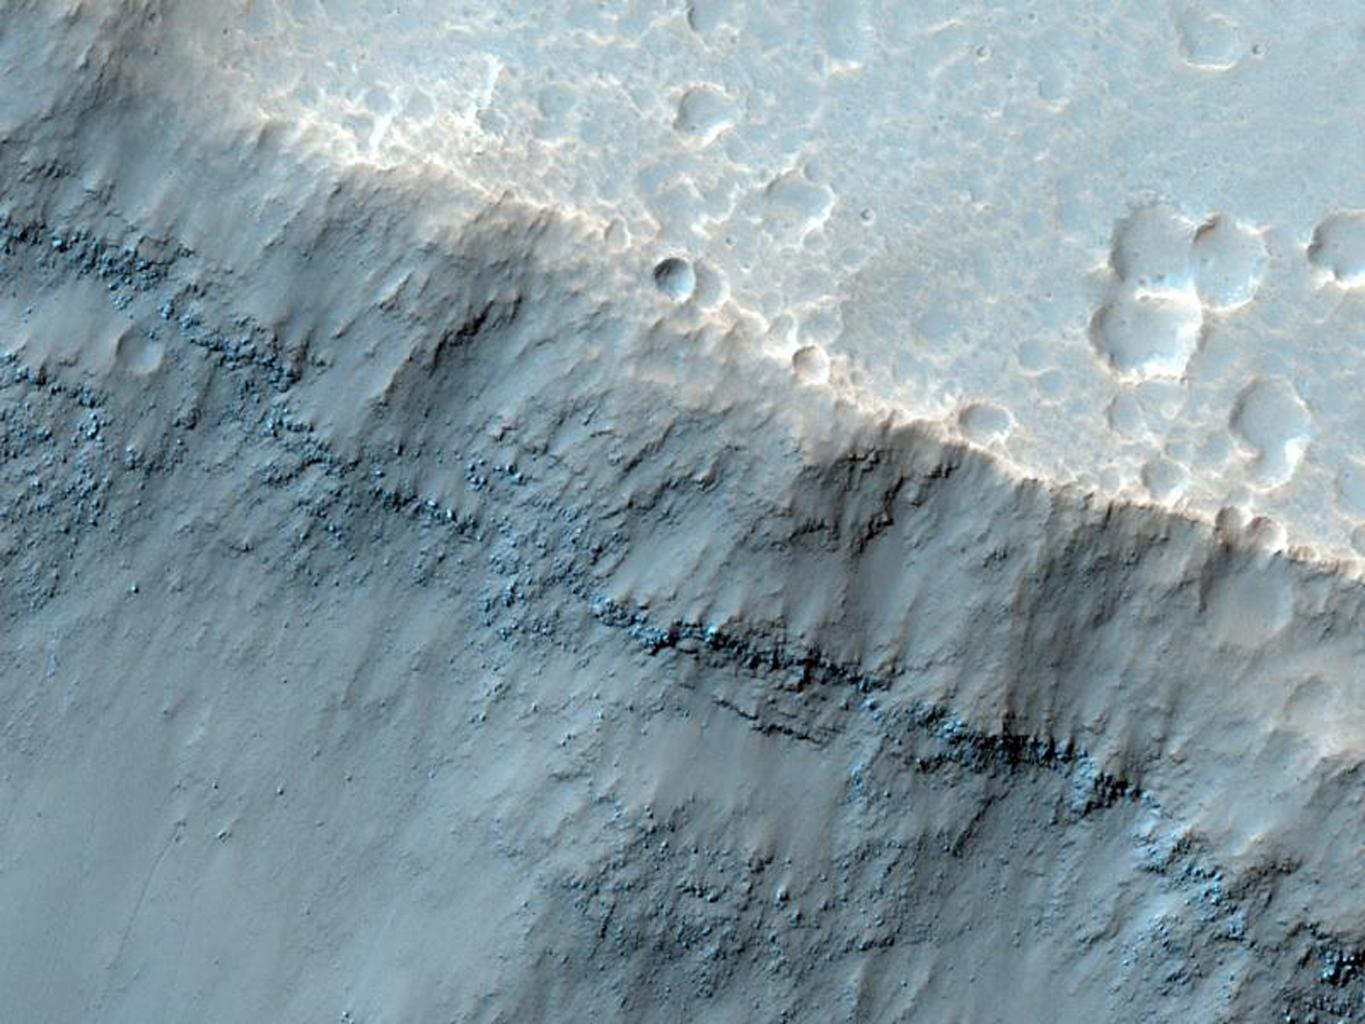 This image taken by NASA's Mars Reconnaissance Orbiter reveals meter-scale (yard-scale) surface textures of mesas and knobs in the Aureum Chaos region of Mars. Aureum Chaos is a wide region of plateaus, mesas, and knobs.